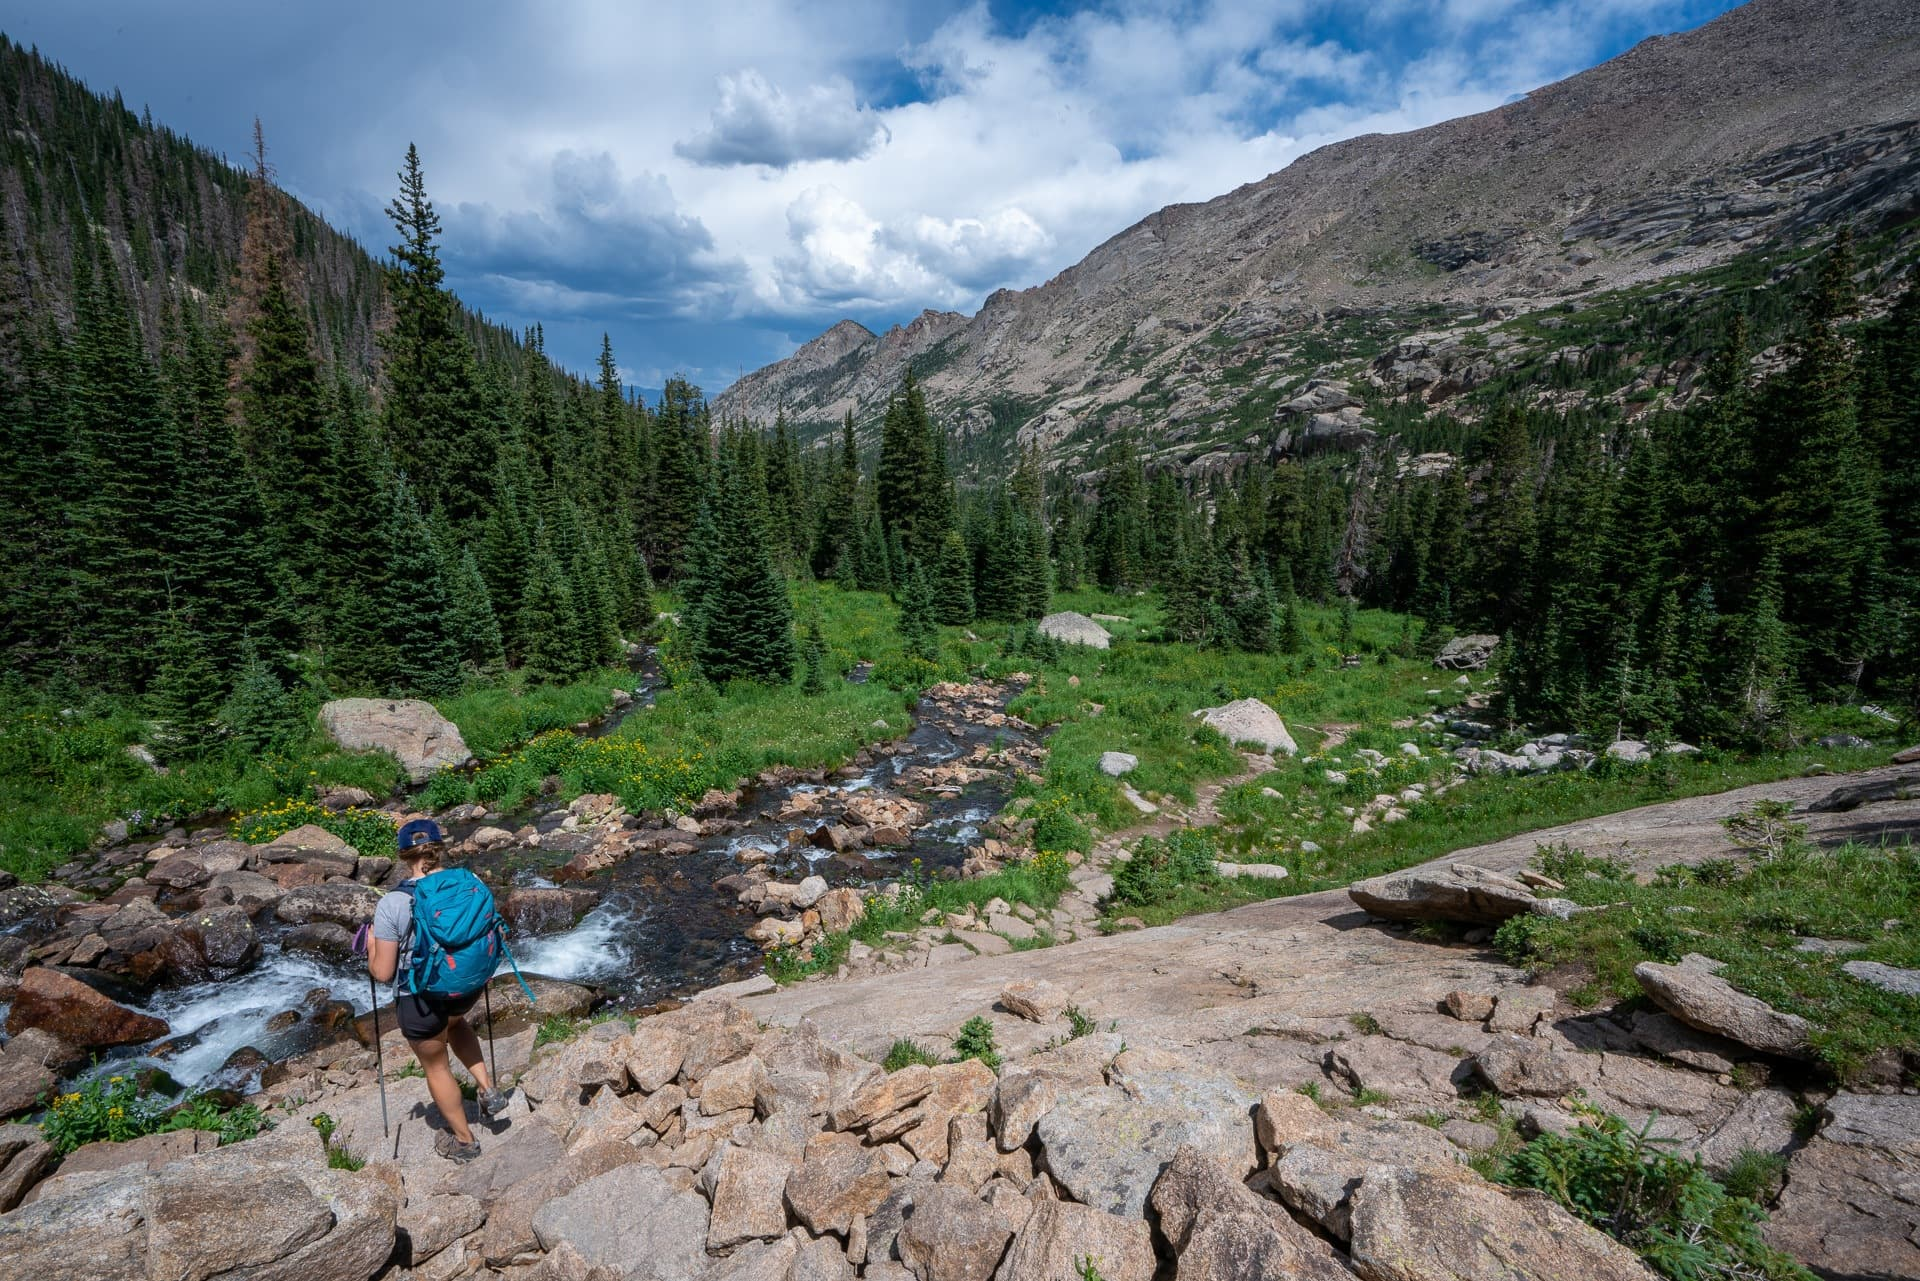 Get our top tips for visiting Rocky Mountain National Park including when to go, where to camp, hiking tips, how to beat the crowds, and more.